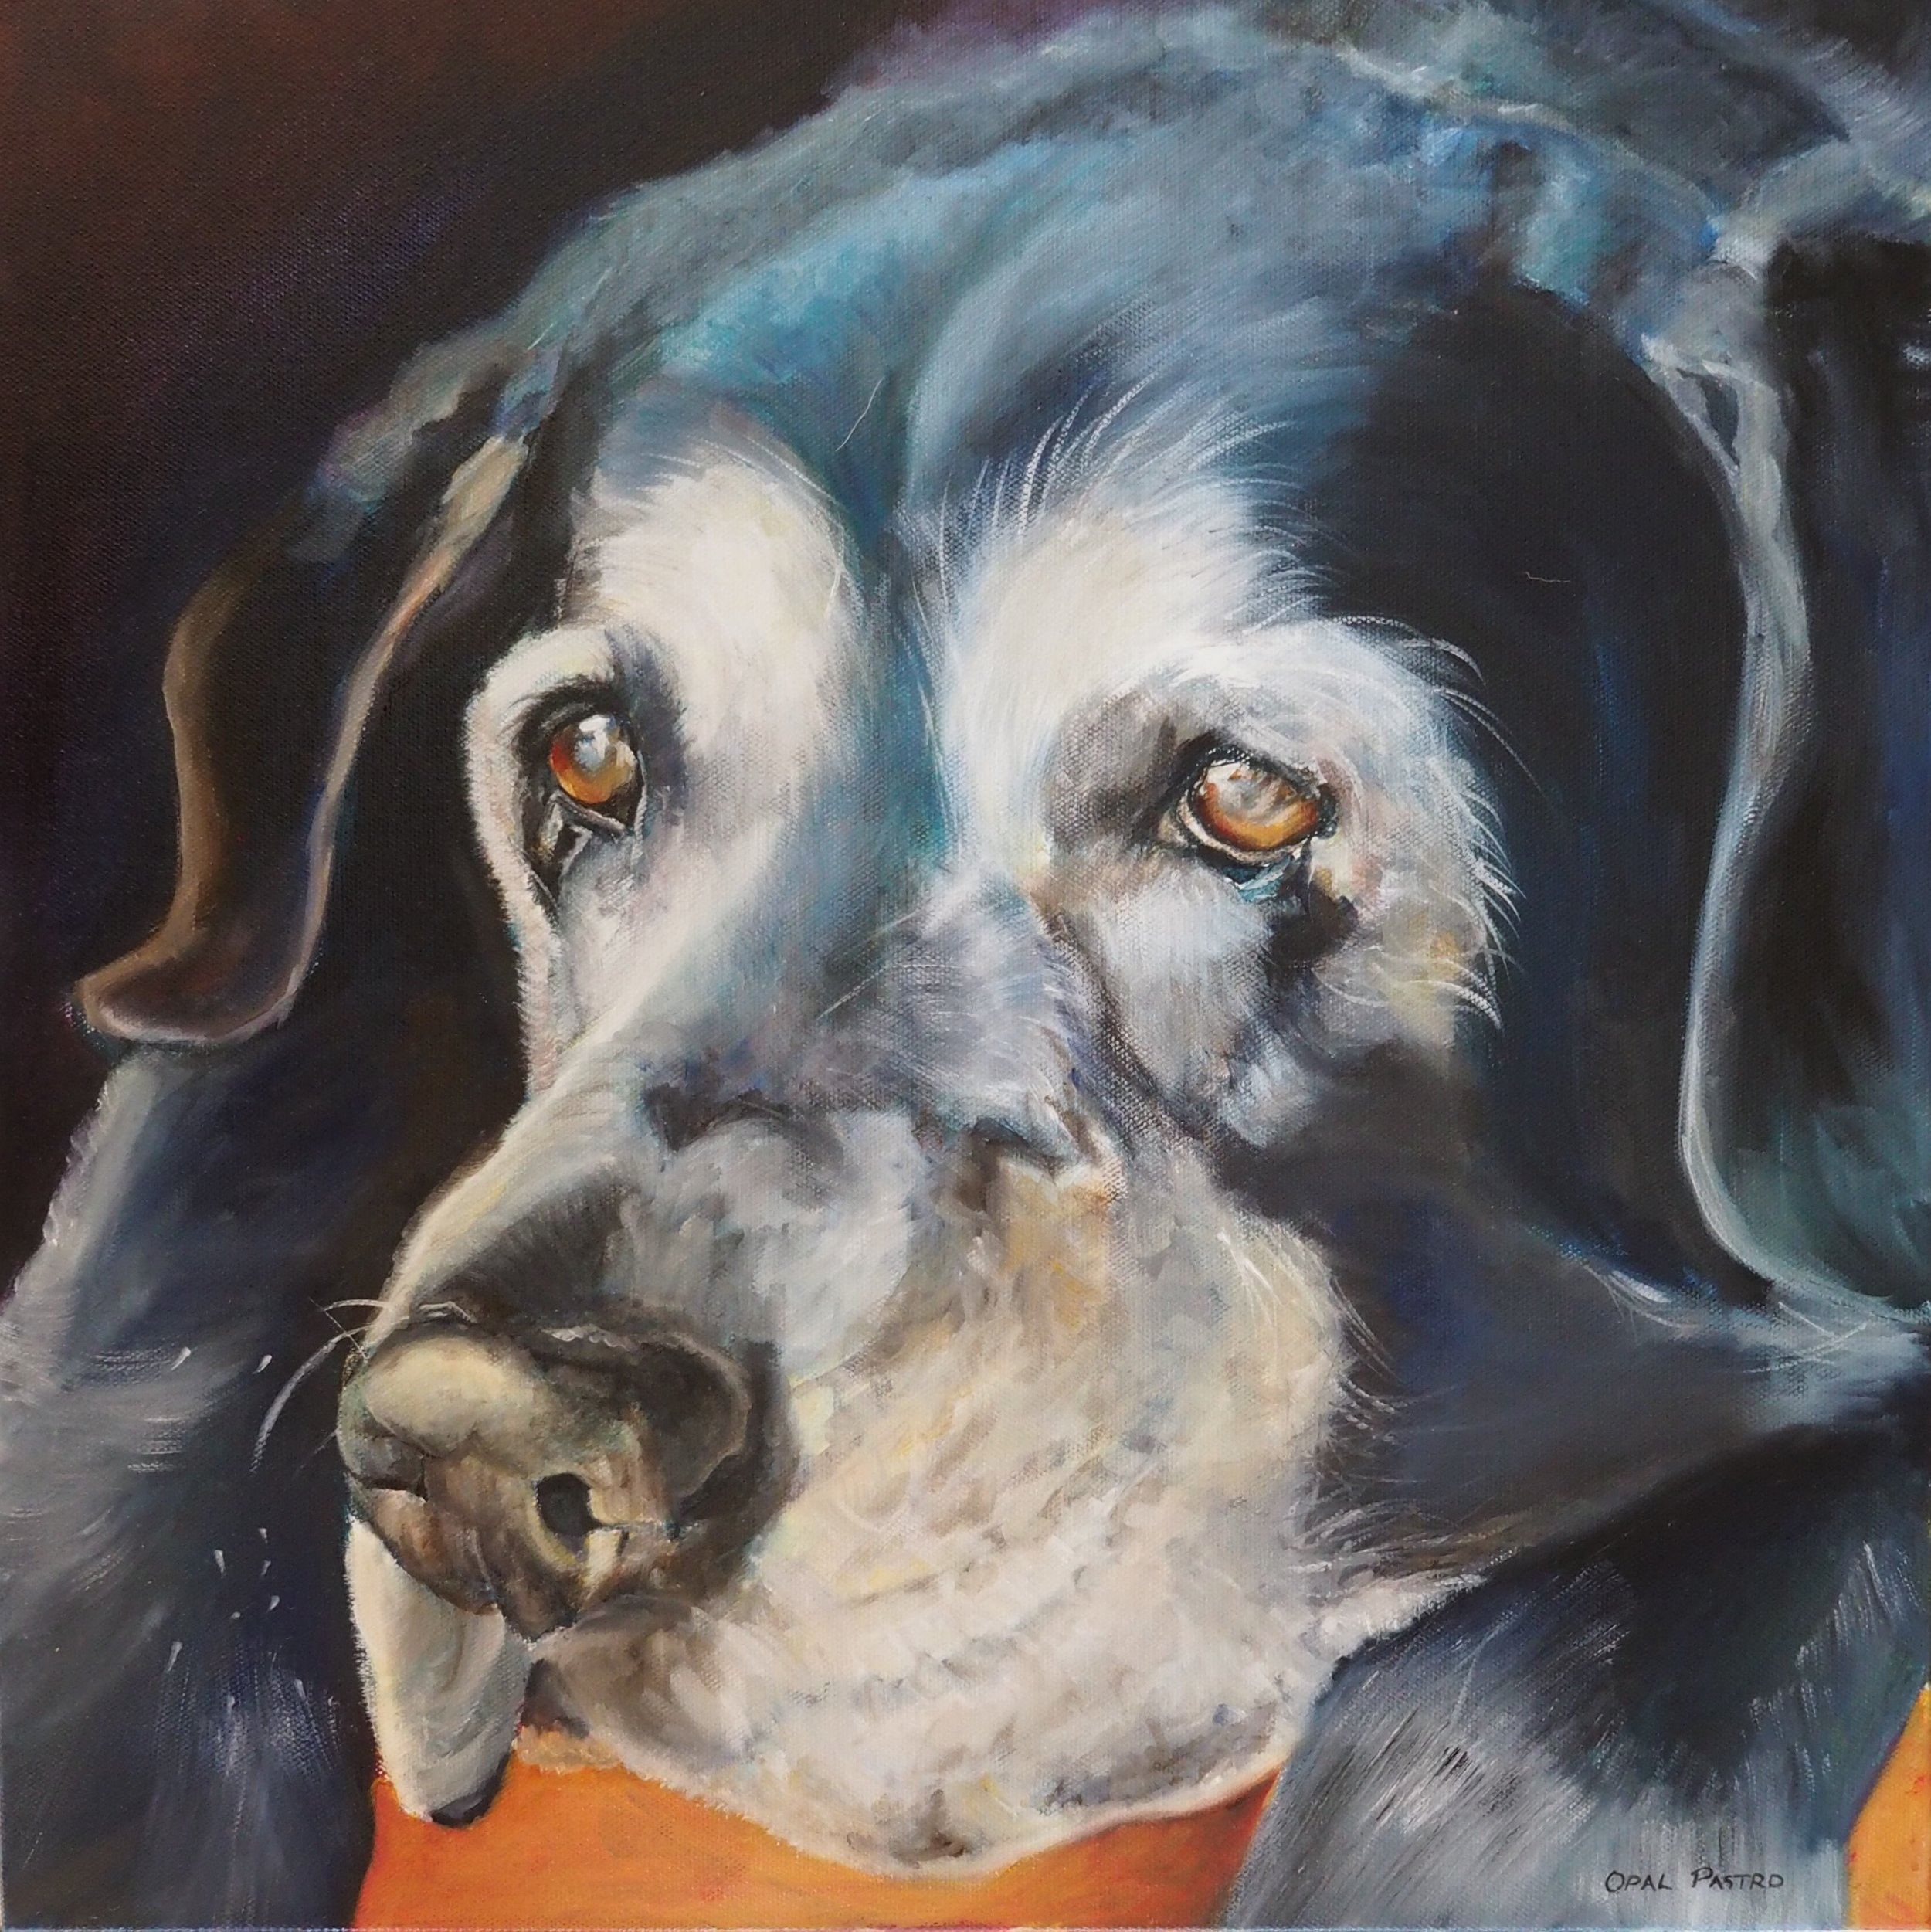 OLD DOG PORTRAIT HAND PAINTED IN AUSTRALIA BY OPAL PASTRO ART